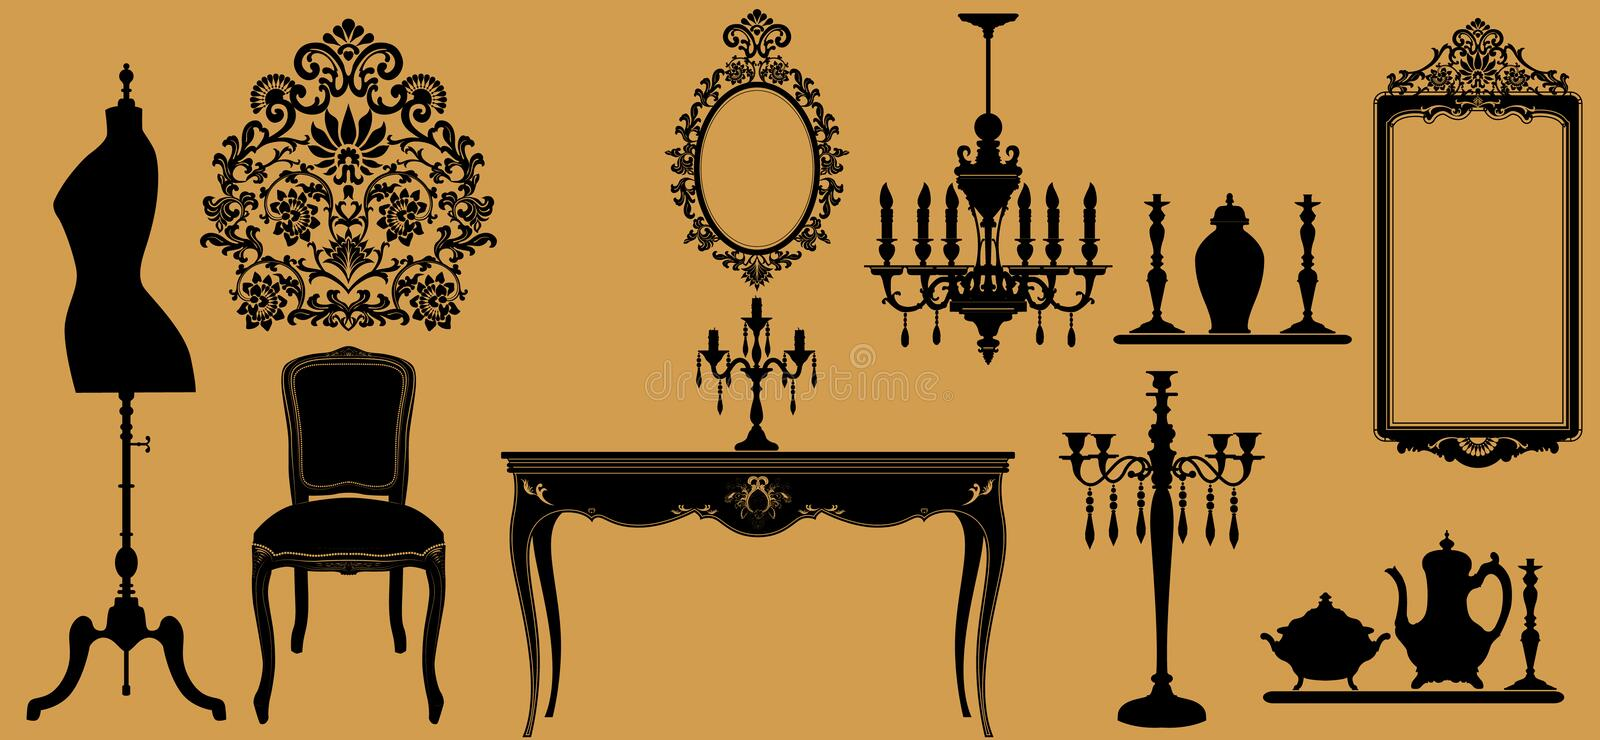 Download Antique furniture stock vector. Image of cristal, stylish - 10842572